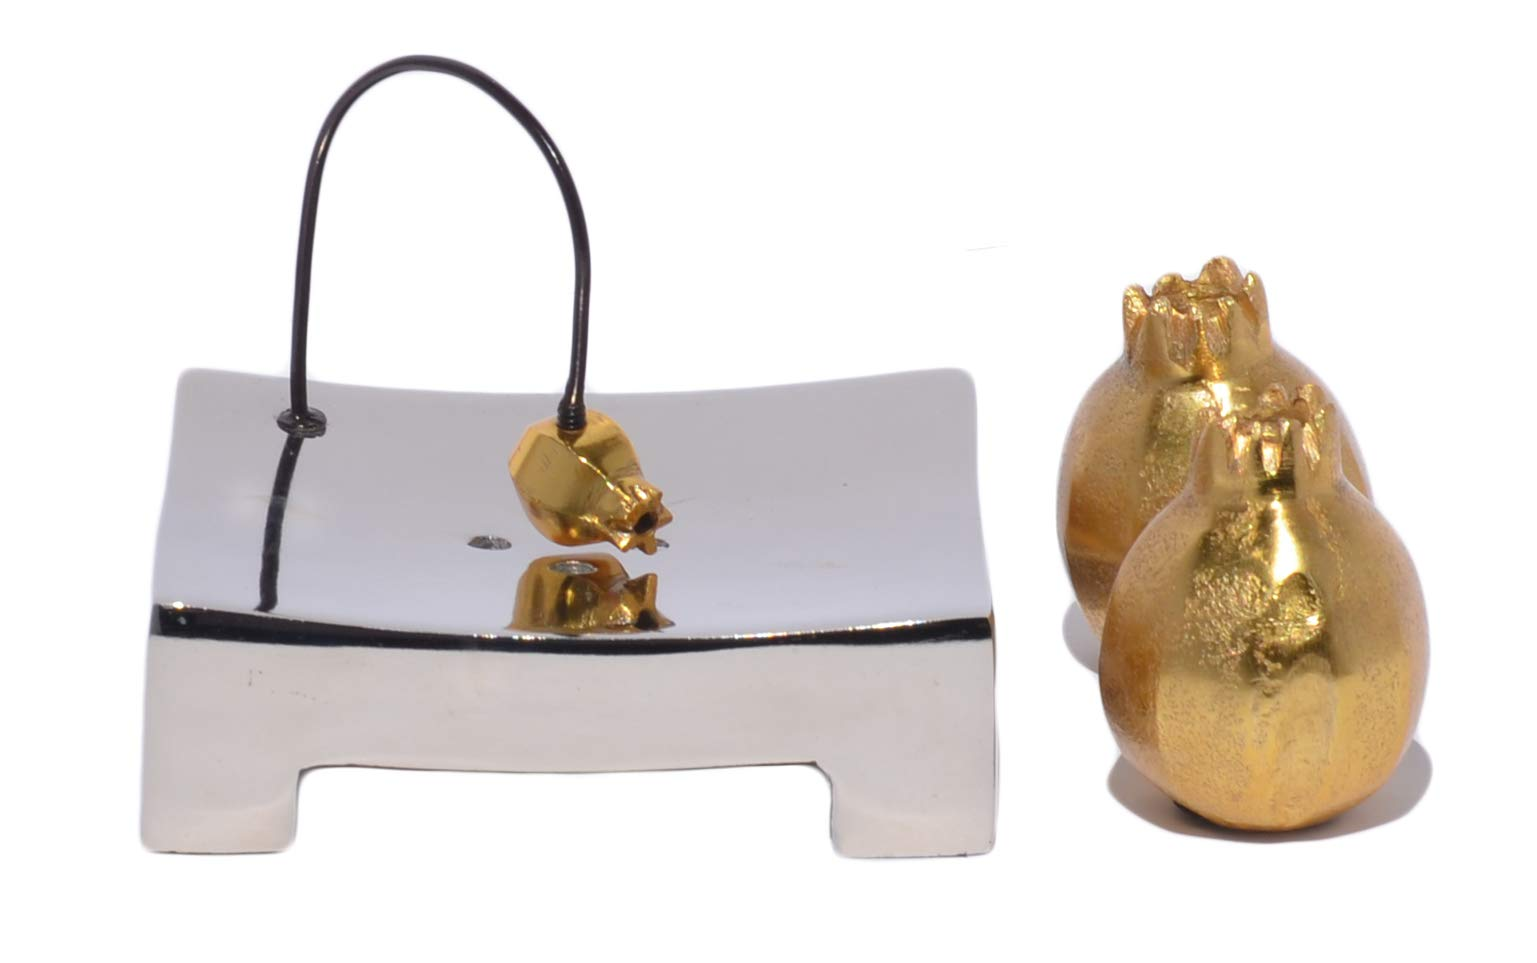 Vibhsa Housewarming Gift Handcrafted Pomegranate Napkin Holder and Salt and Pepper Shakers Gift Set